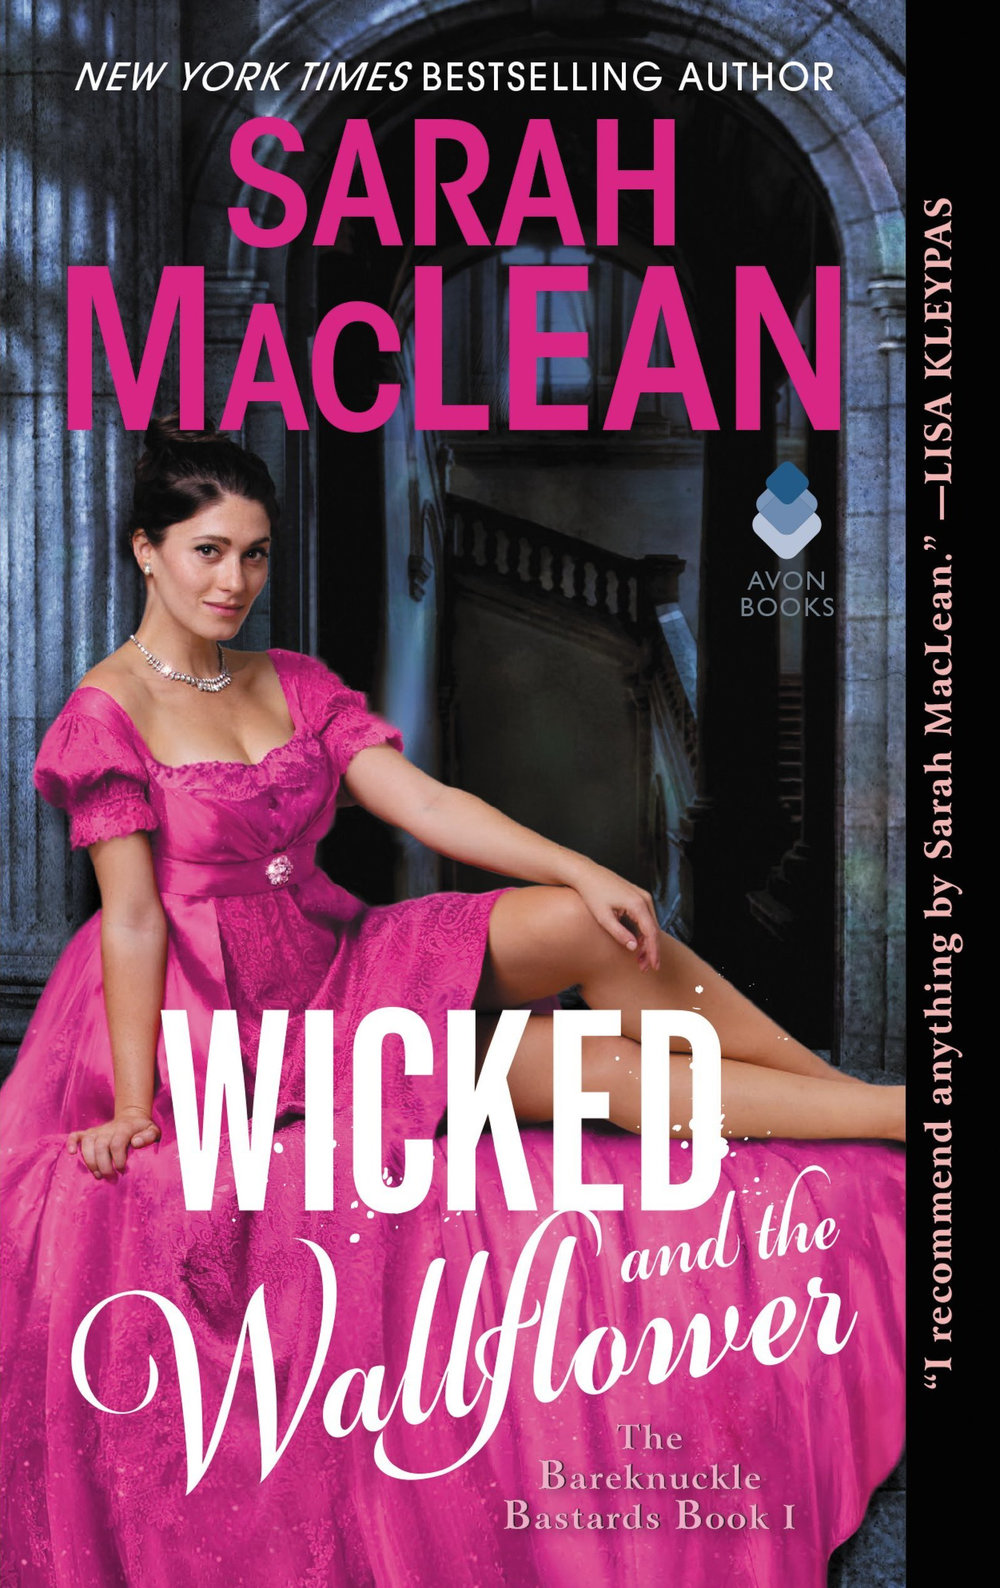 wicked.cover.jpg